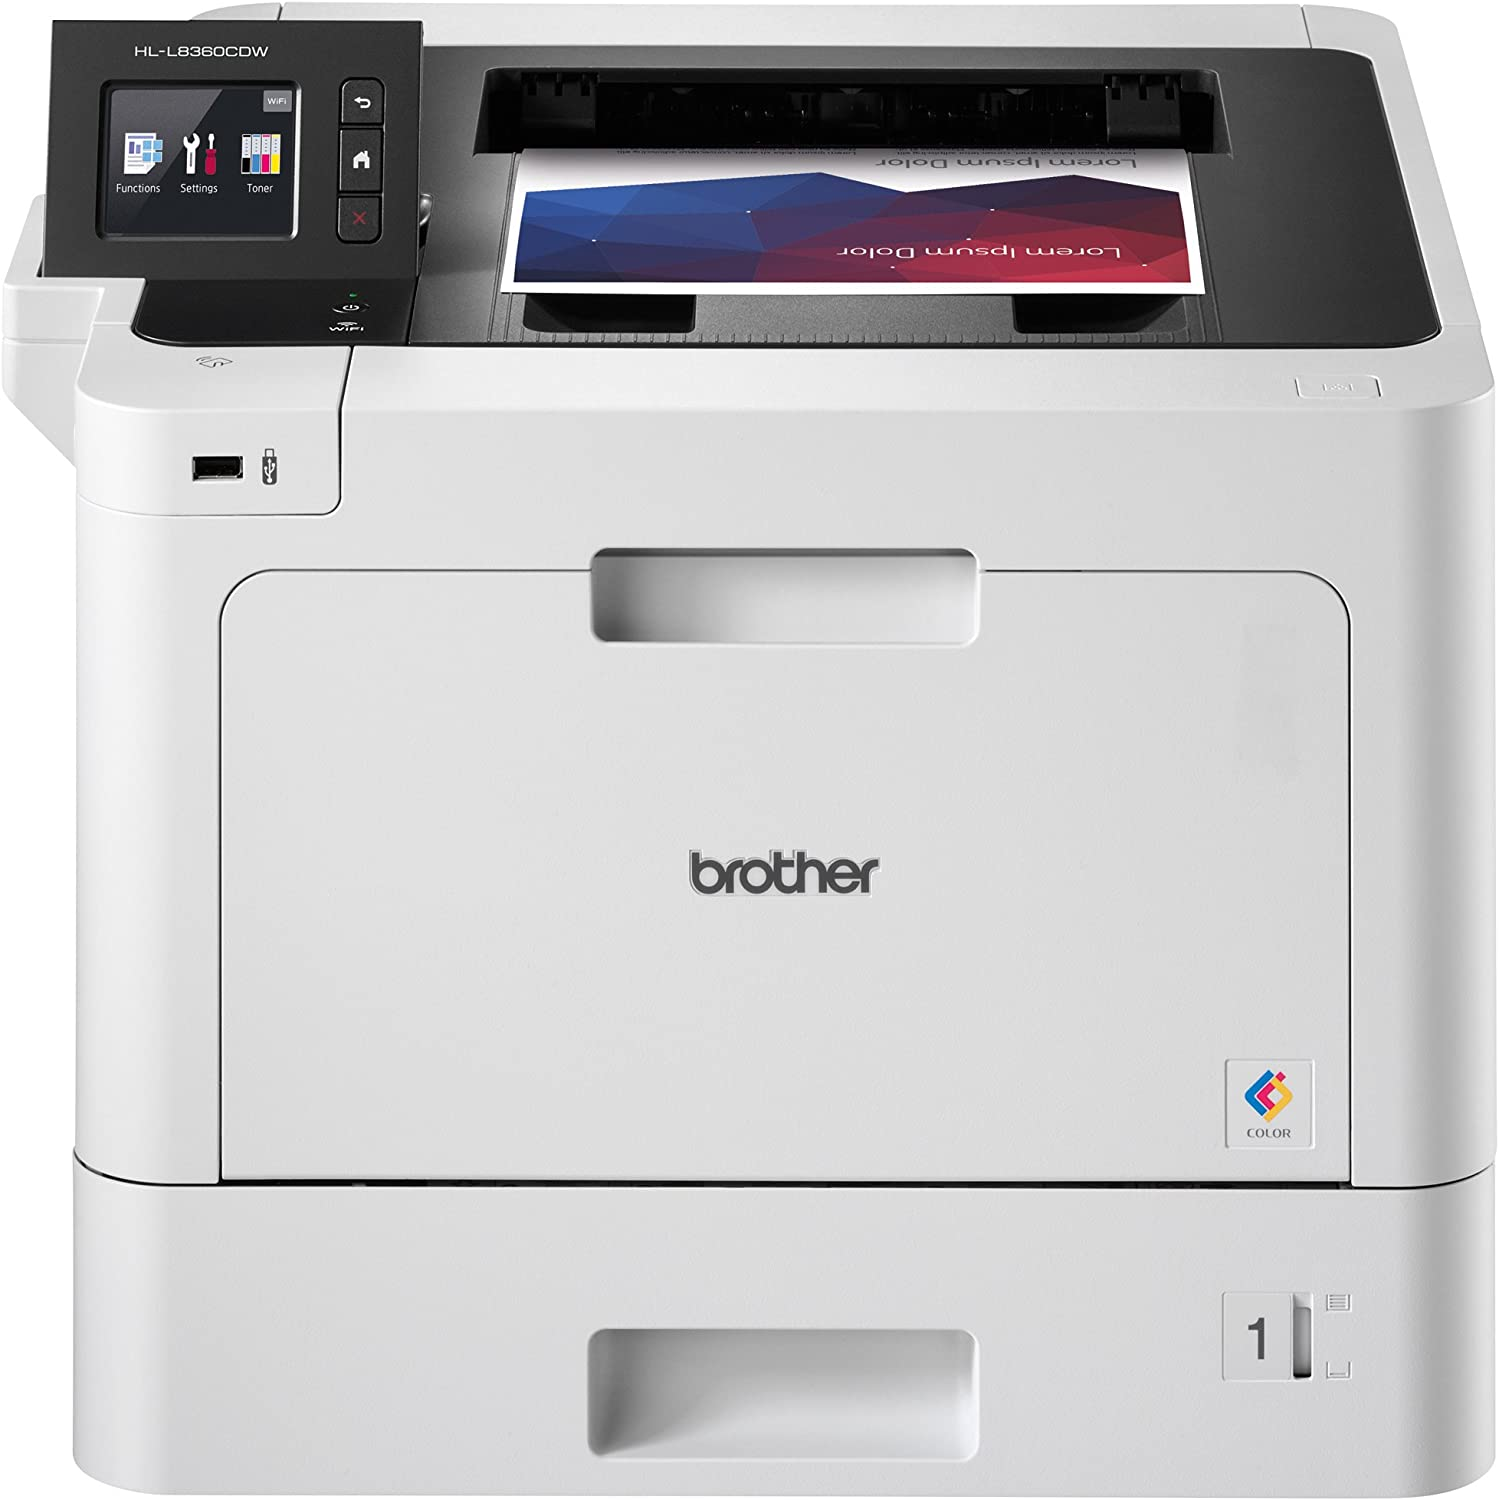 Brother Business Color Laser Printer, HL-L8360CDW, Wireless Networking, Automatic Duplex Printing, Mobile Printing, Cloud printing,  Dash Replenishment Ready: Office Products